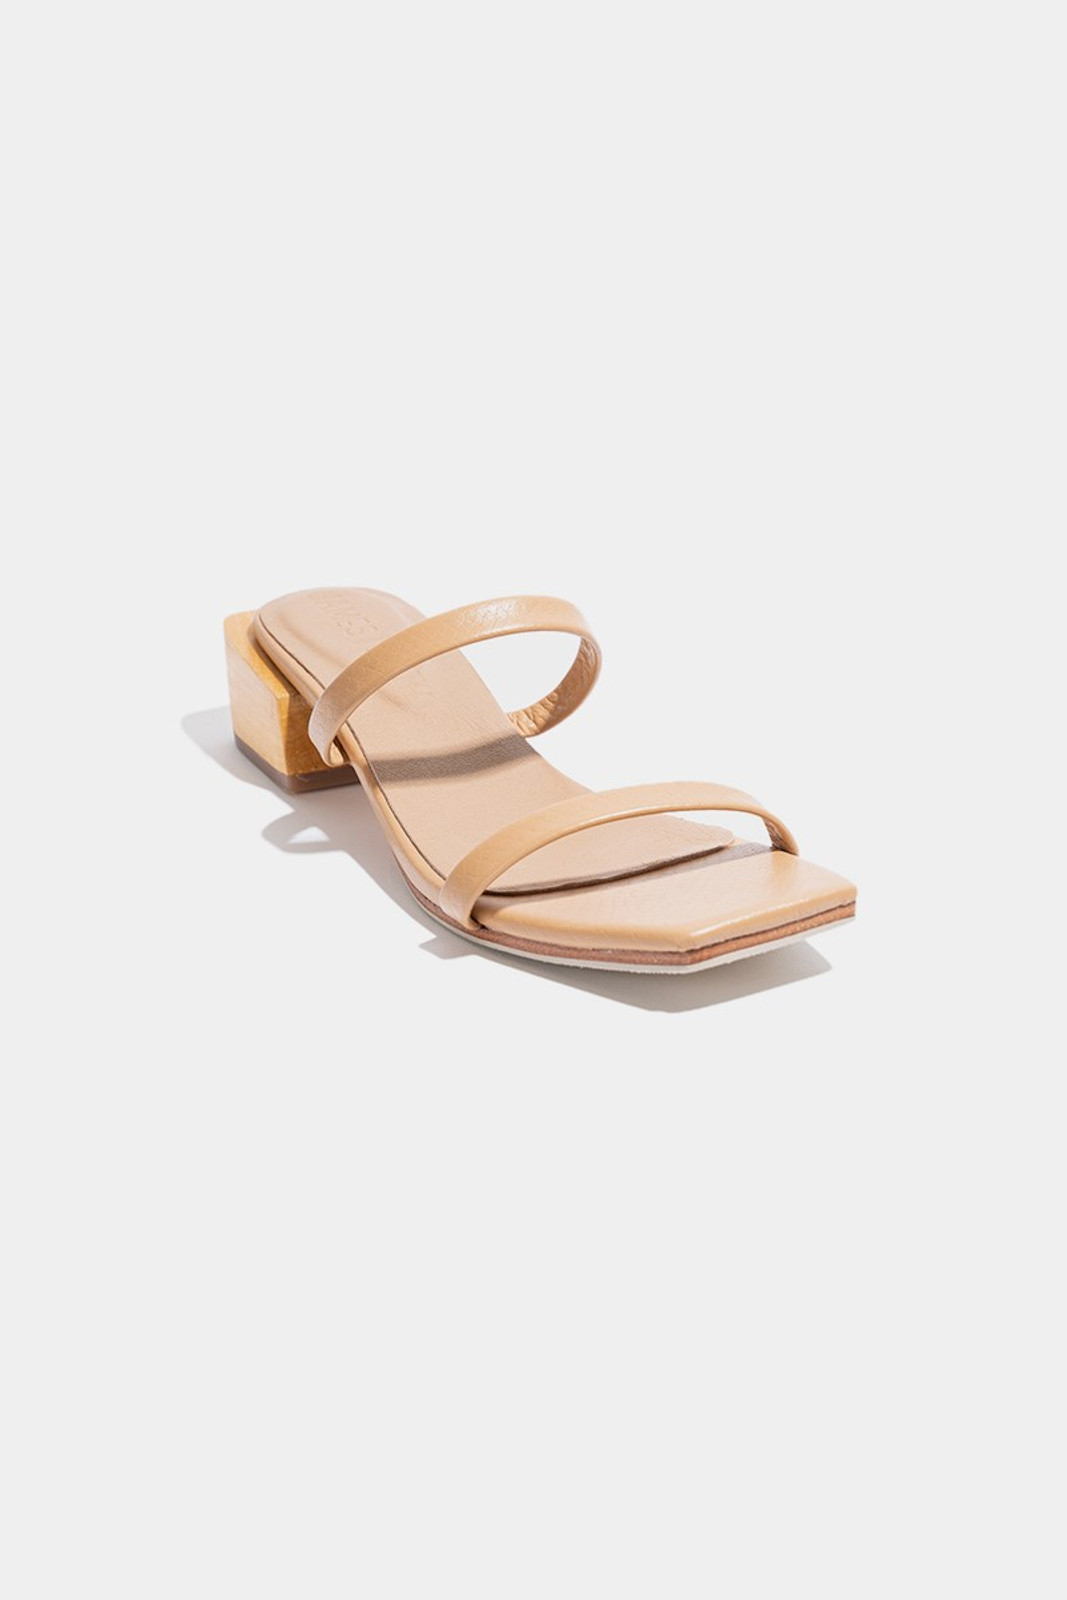 Elka Collective SALO SANDAL Neutrals  1